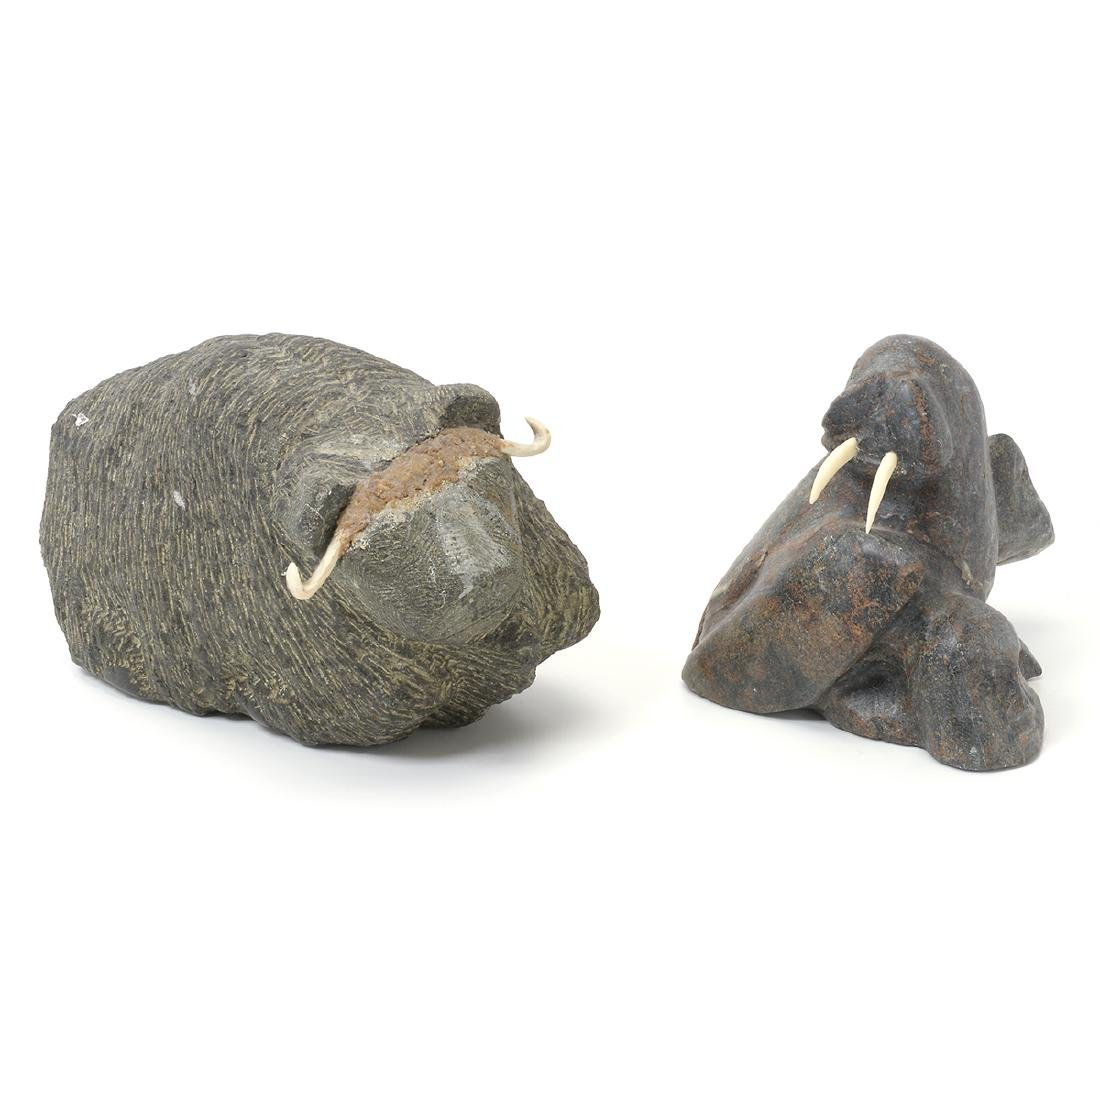 Two Inuit Soapstone Sculptures: Prehistoric Buffalo and